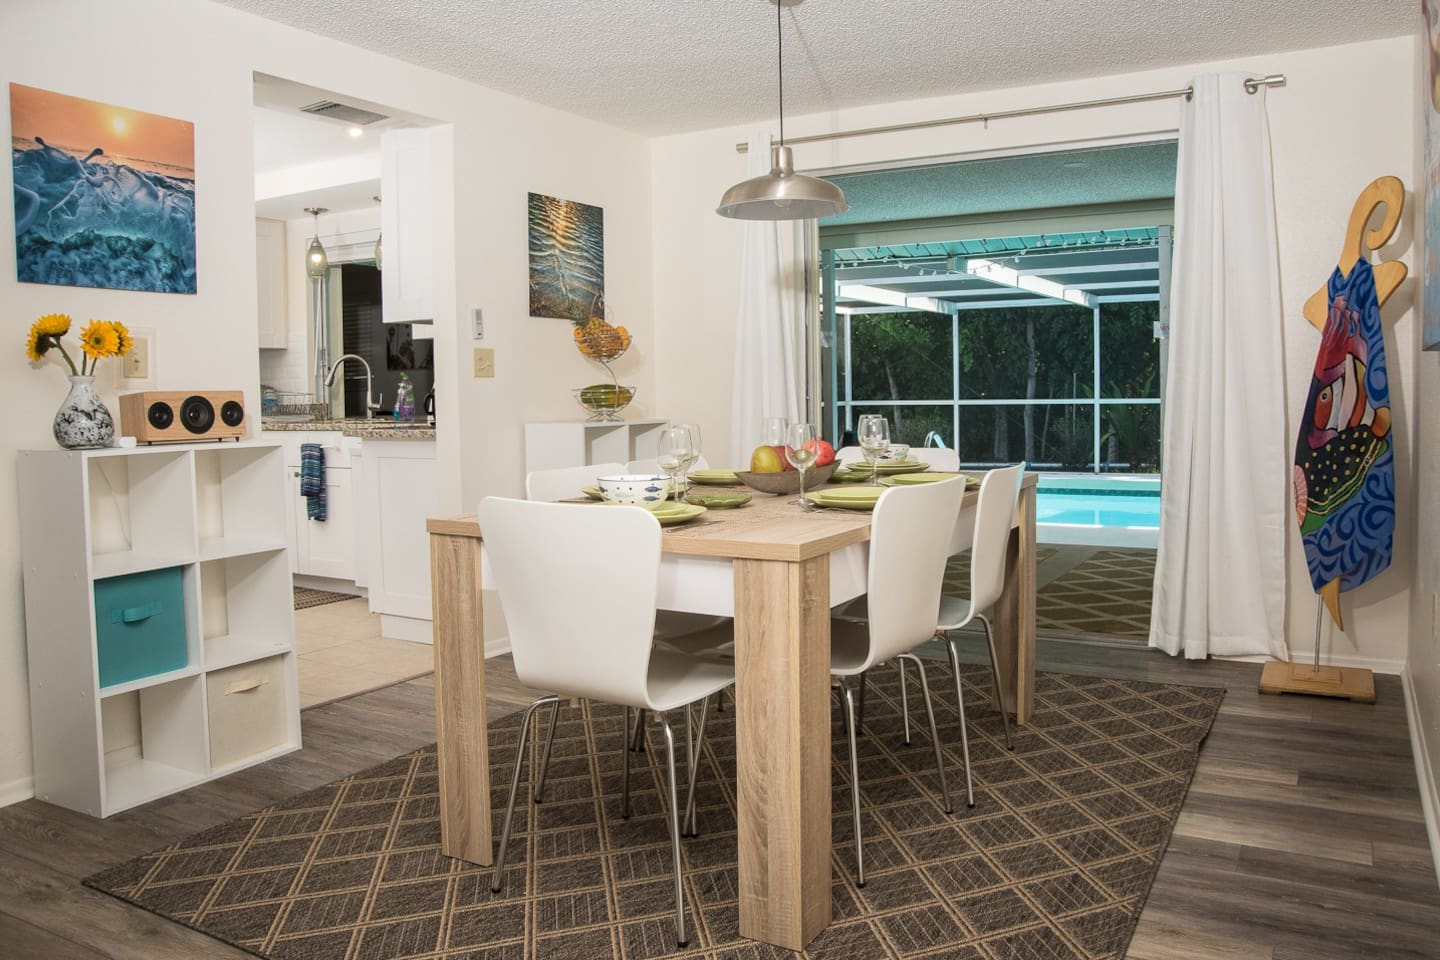 Open floor plan with living room & dining area with sliding glass doors opening to the pool area